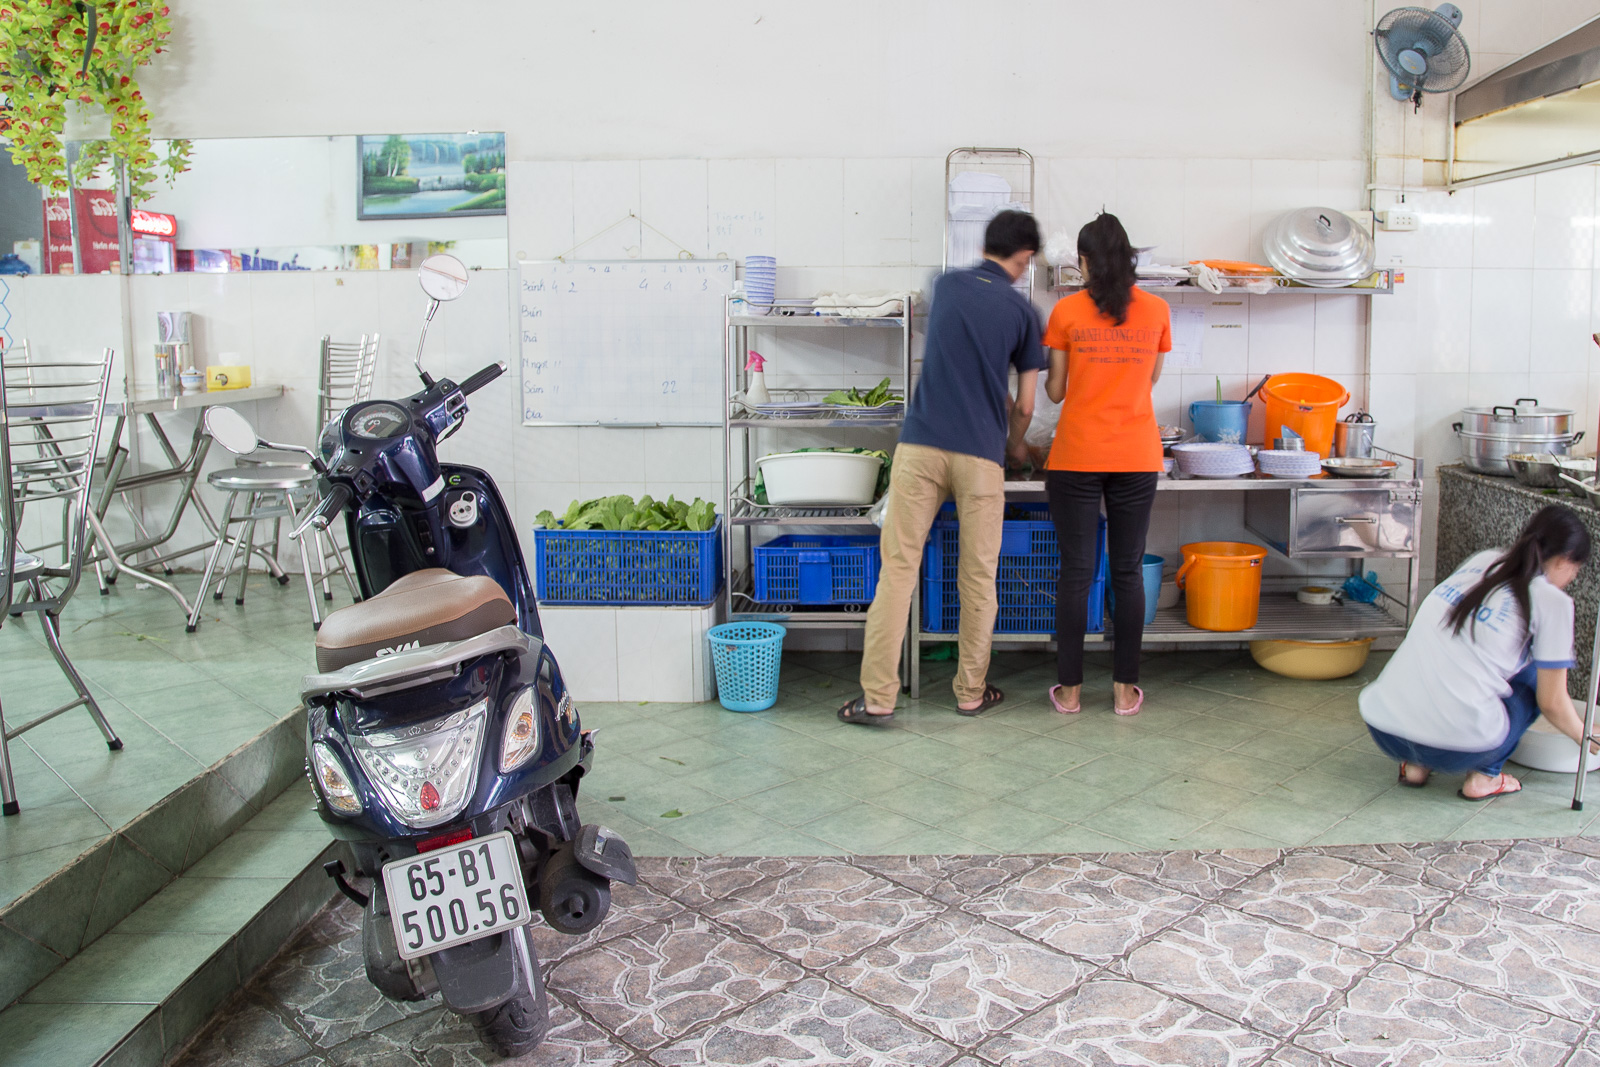 Customers park their scooters in the kitchen of Banh Cong Co Ut.